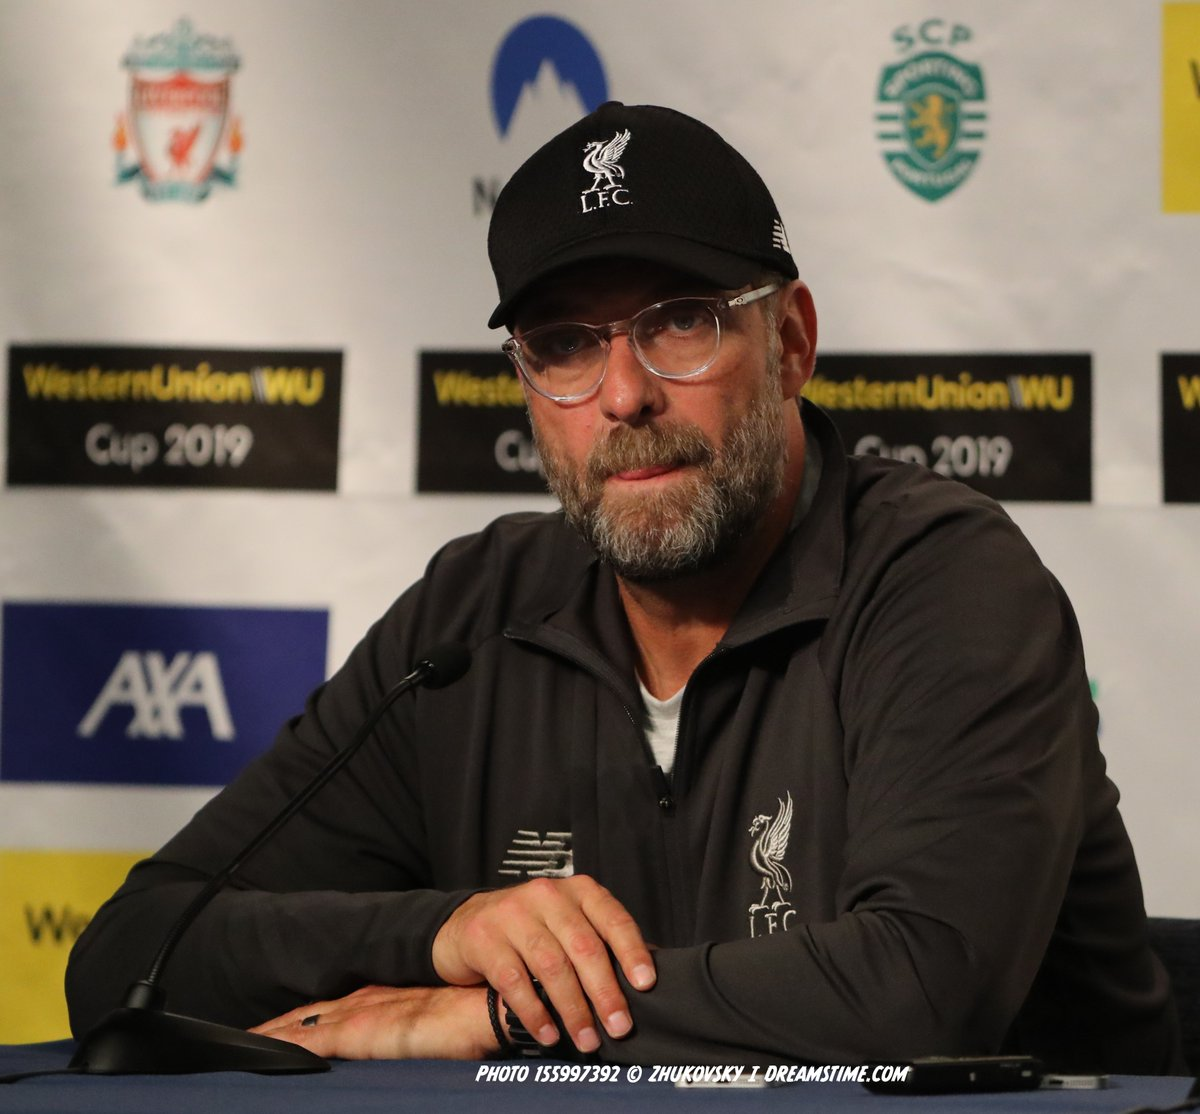 #Liverpool faces tough fixtures ahead in #PL against #Burnley, #Spurs, #WestHam, #Brighton, #ManCity, #Leicester & #Everton in the upcoming weeks. #Klopp has a big task of returning #LiverpoolFC  to winning ways.#LFC #YNWA   📸 Photo 155997392 © Zhukovsky